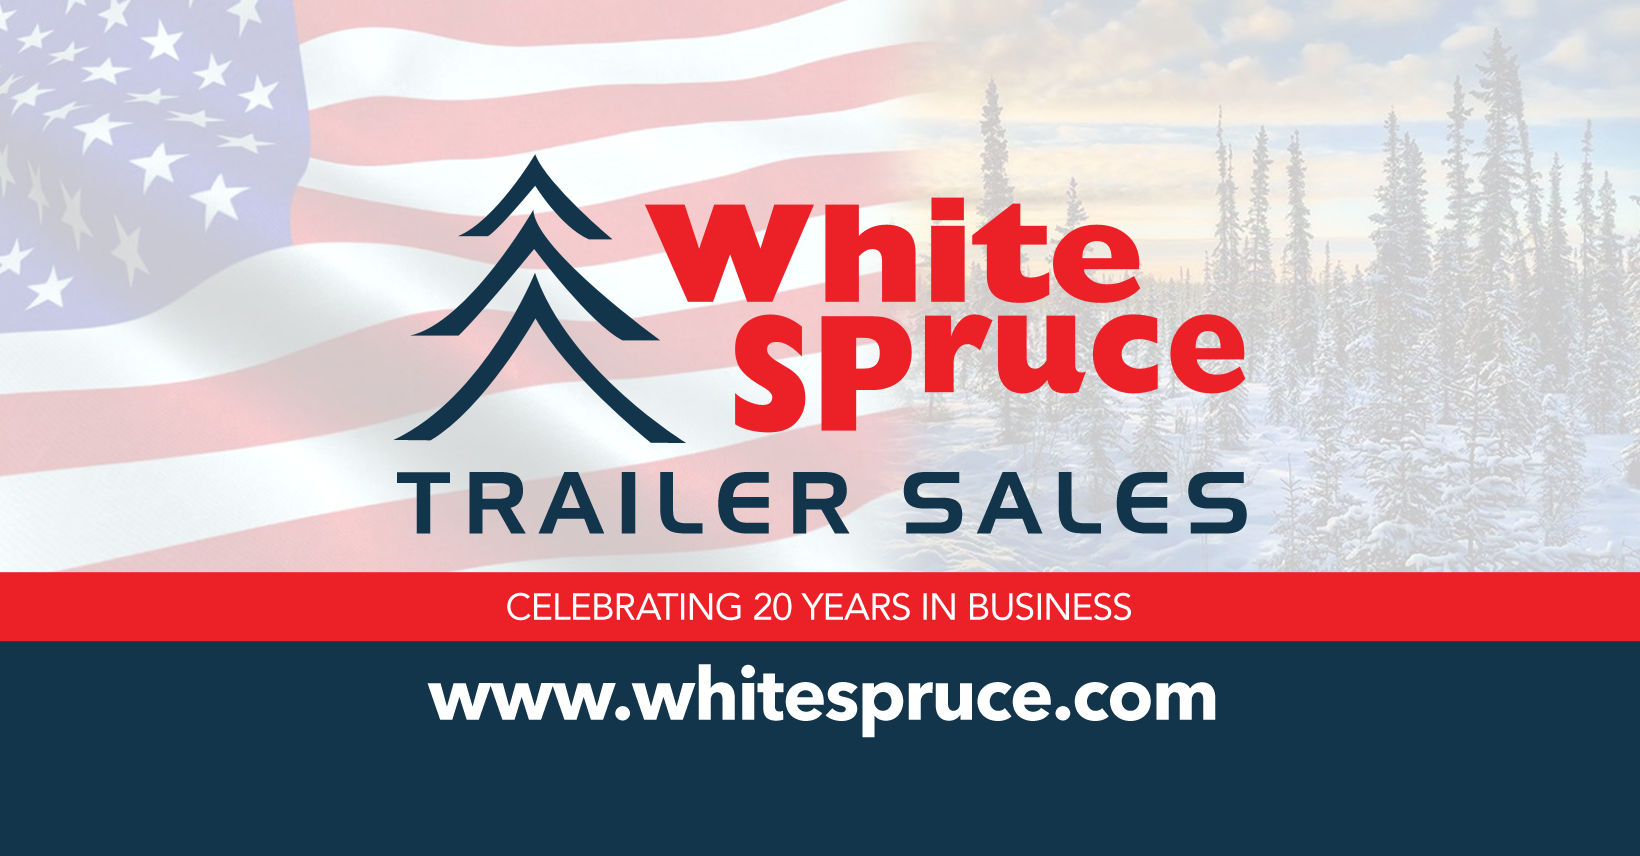 White Spruce Trailer Sales-North Pole reviews | Trailer Dealers at 2156 Bunge Street - North Pole AK